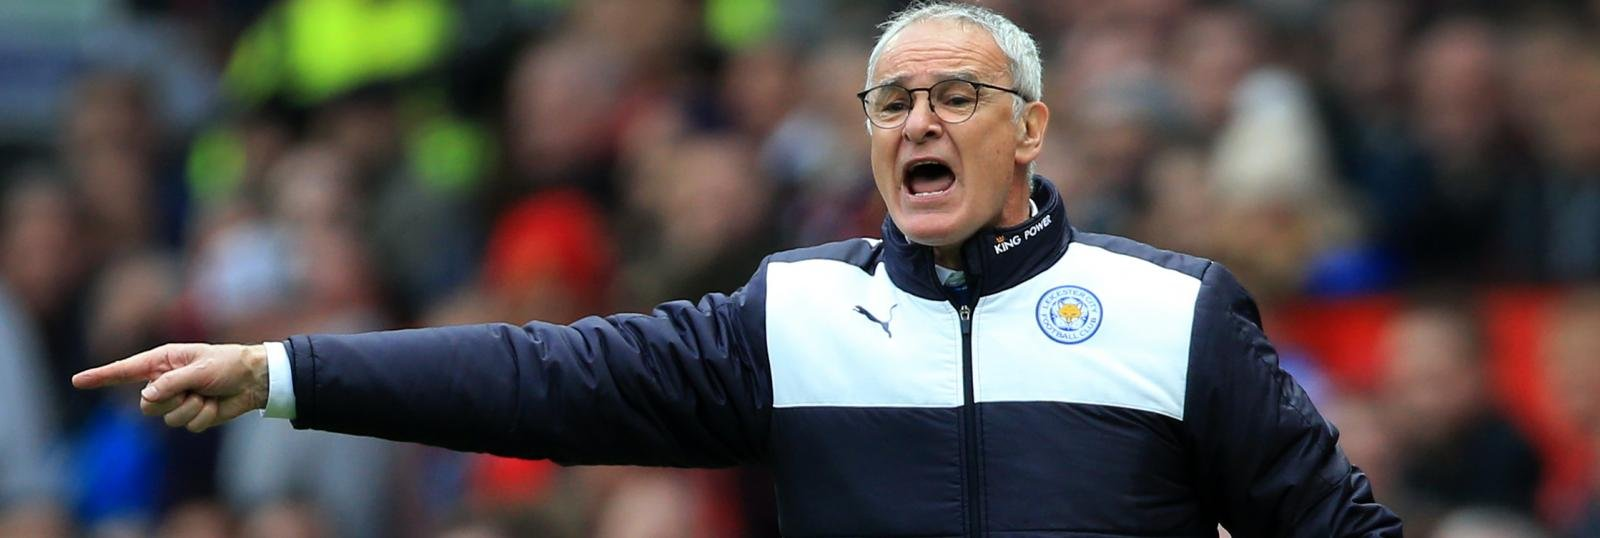 The £3m man – Leicester City's Claudio Ranieri will need to earn his money this season